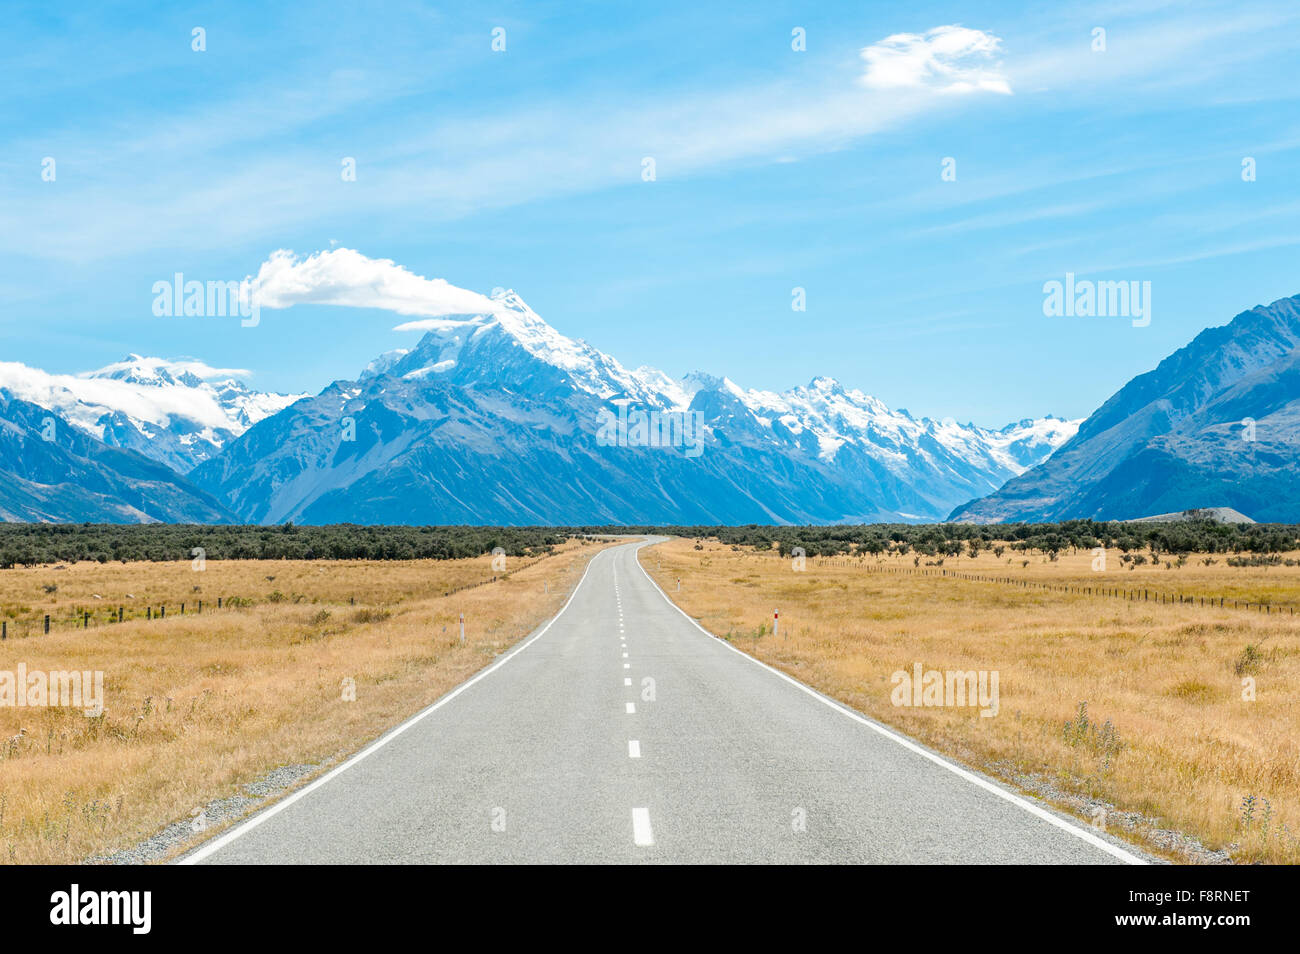 Mackenzie country and Mount Cook, South Island, New Zealand - Stock Image